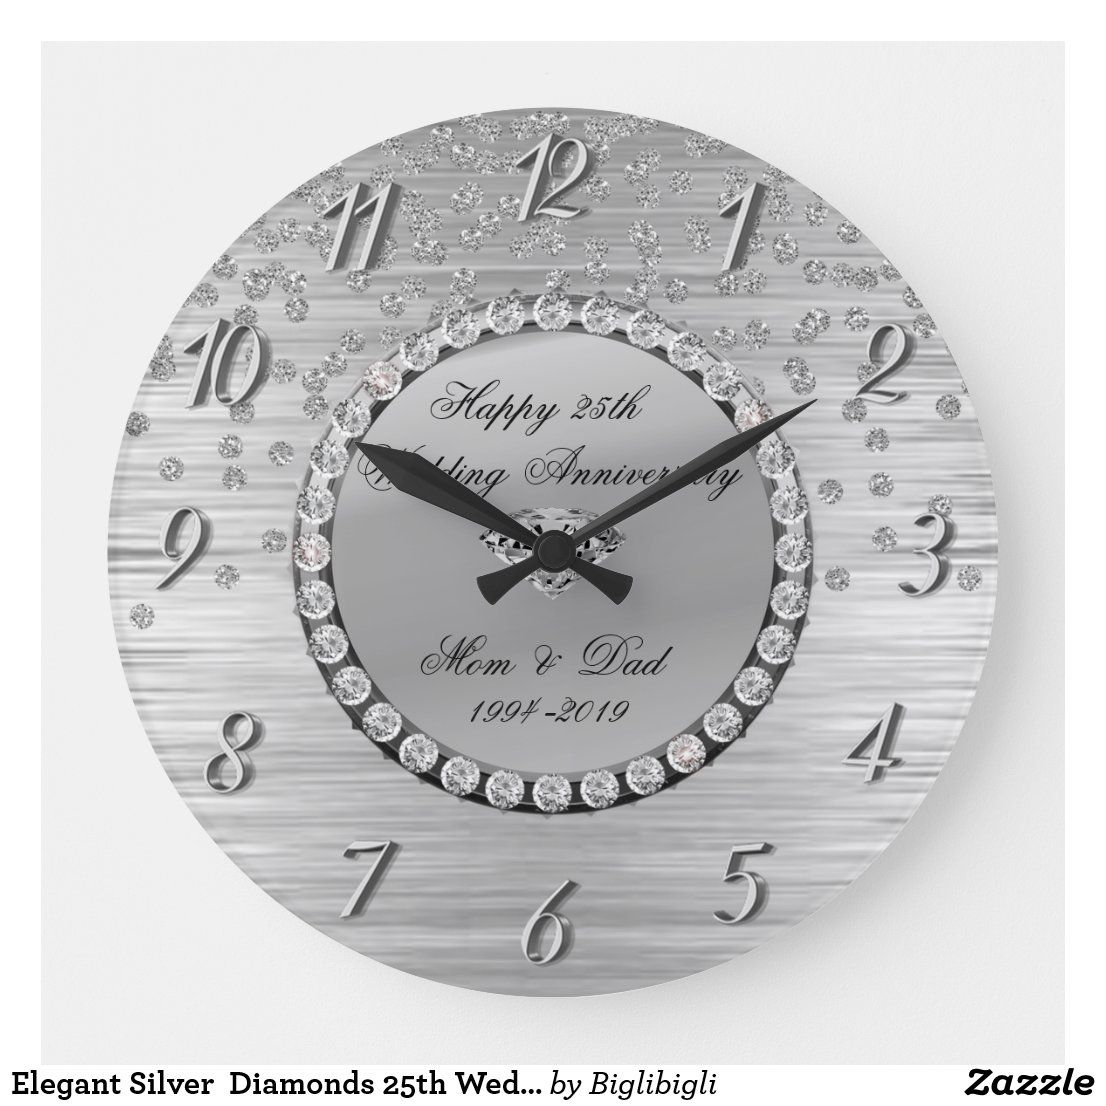 Elegant Silver Diamonds 25th Wedding Anniversary Large Clock Zazzle Com In 2020 25th Wedding Anniversary Clock Large Clock